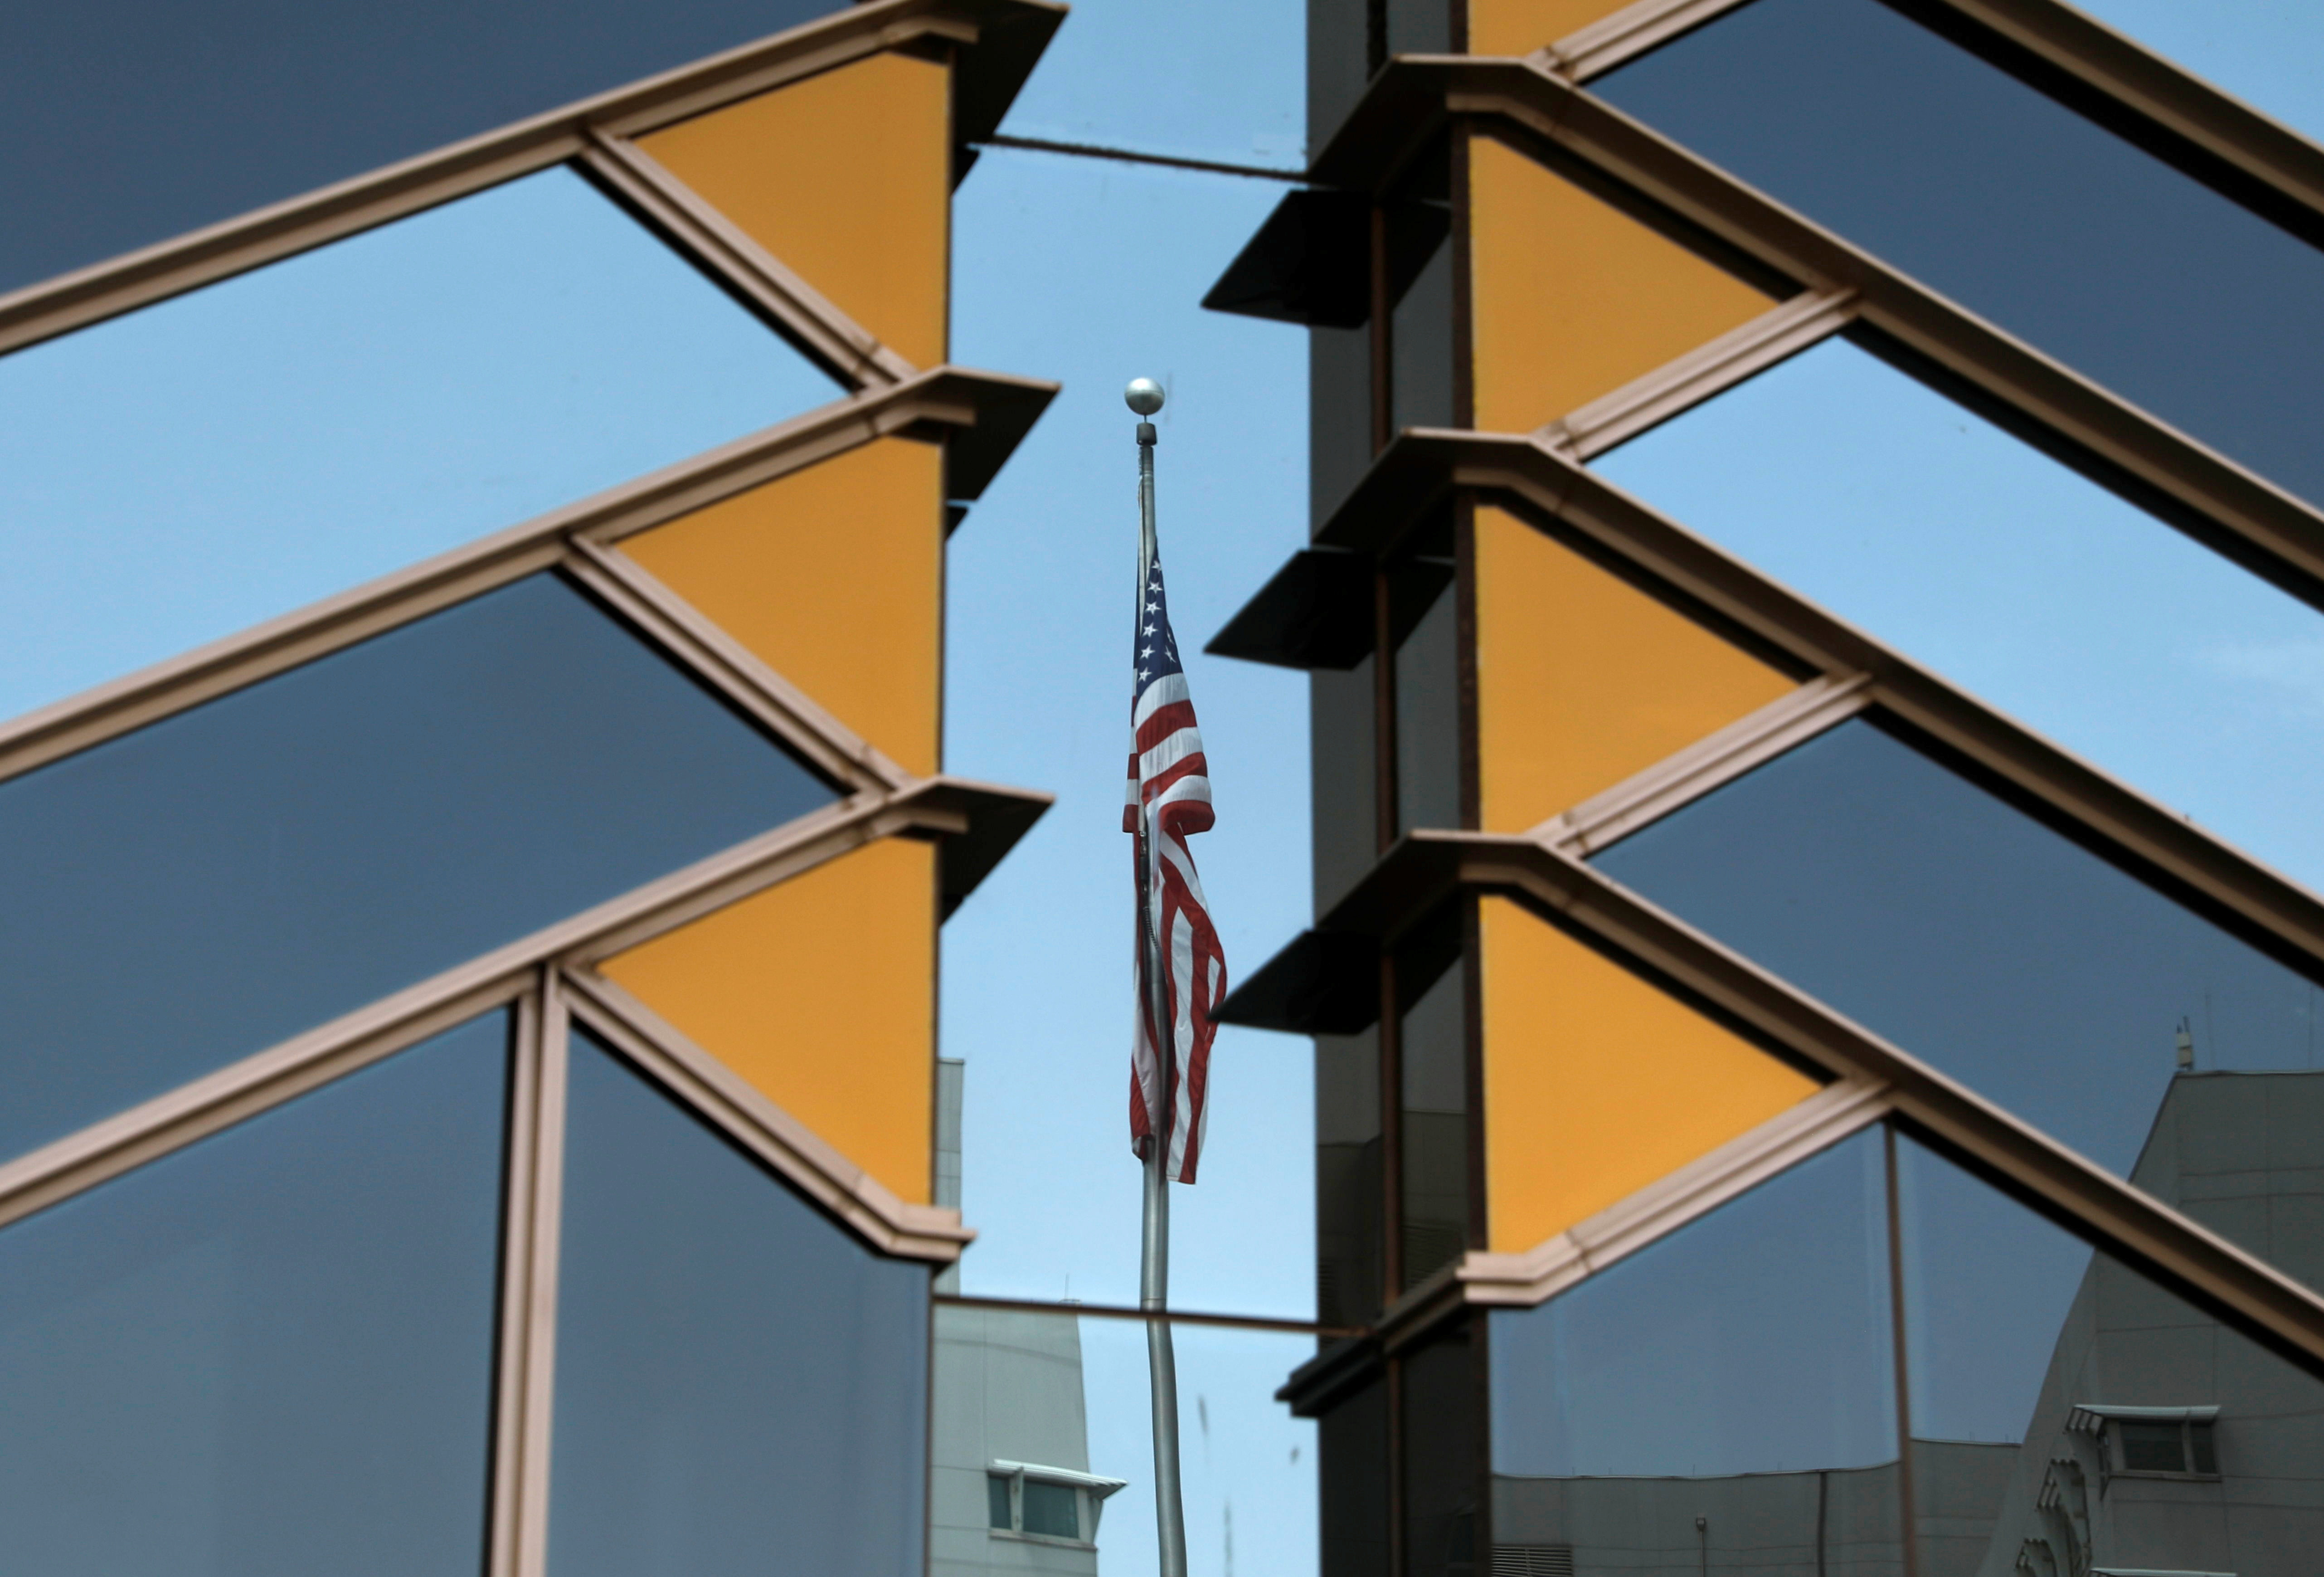 The U.S. flag is reflected on the windows of the U.S. Embassy in Kabul, Afghanistan July 30, 2021. REUTERS/Stringer